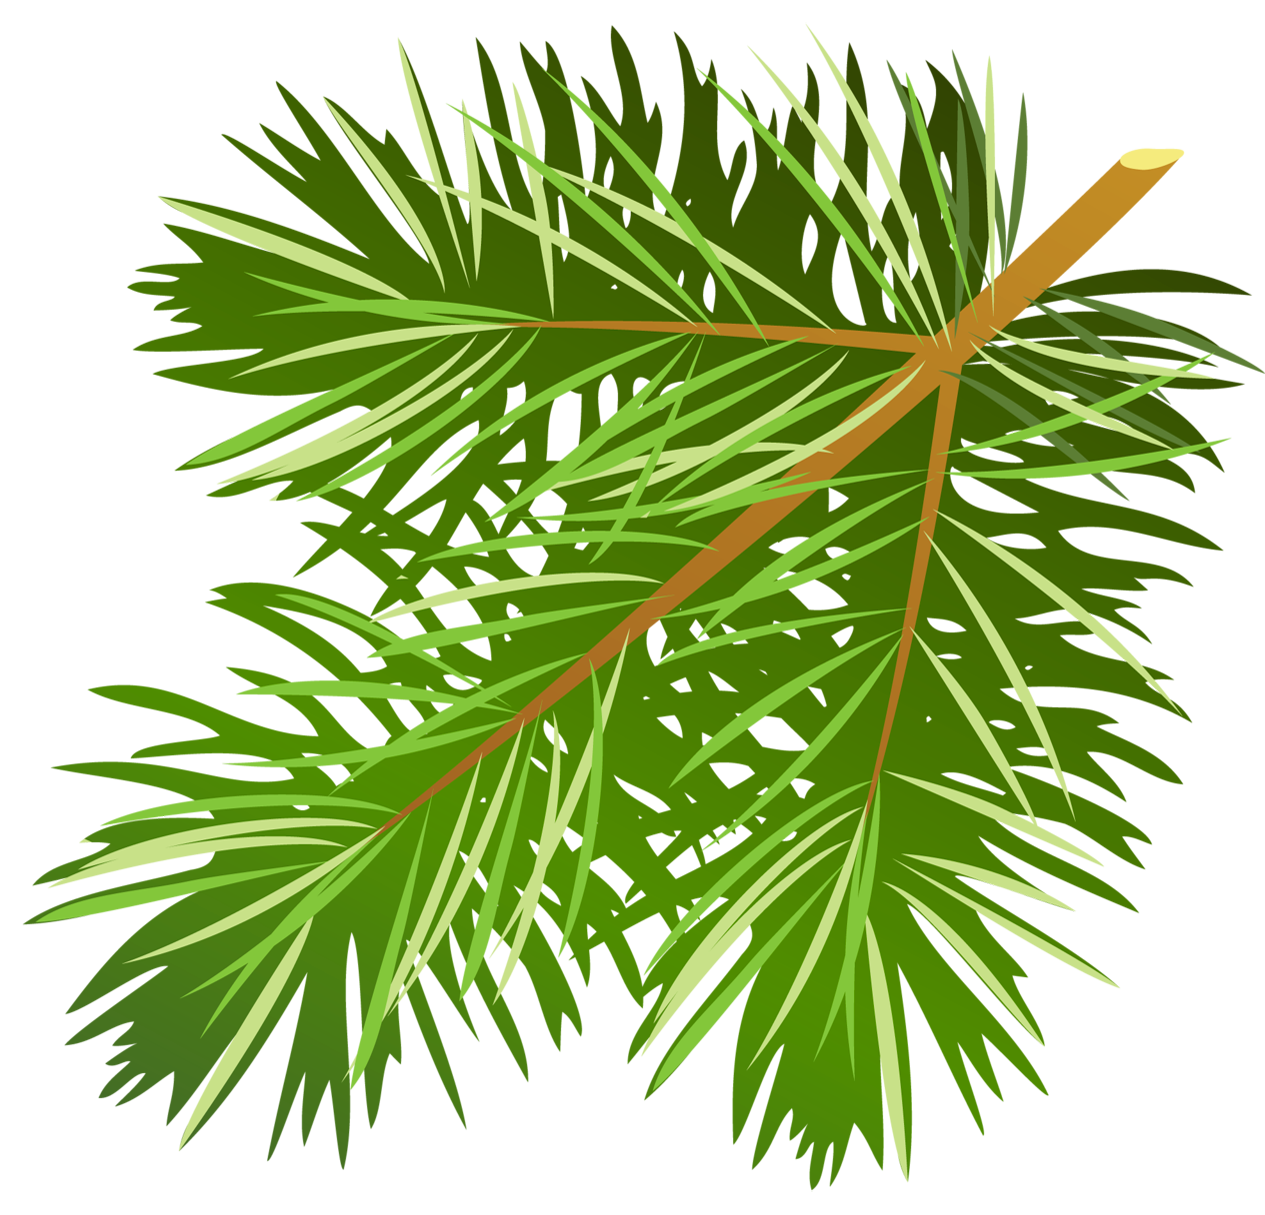 Loblolly pine tree branch clipart svg freeuse library Transparent Pine Branch PNG Clipart | Gallery Yopriceville - High ... svg freeuse library